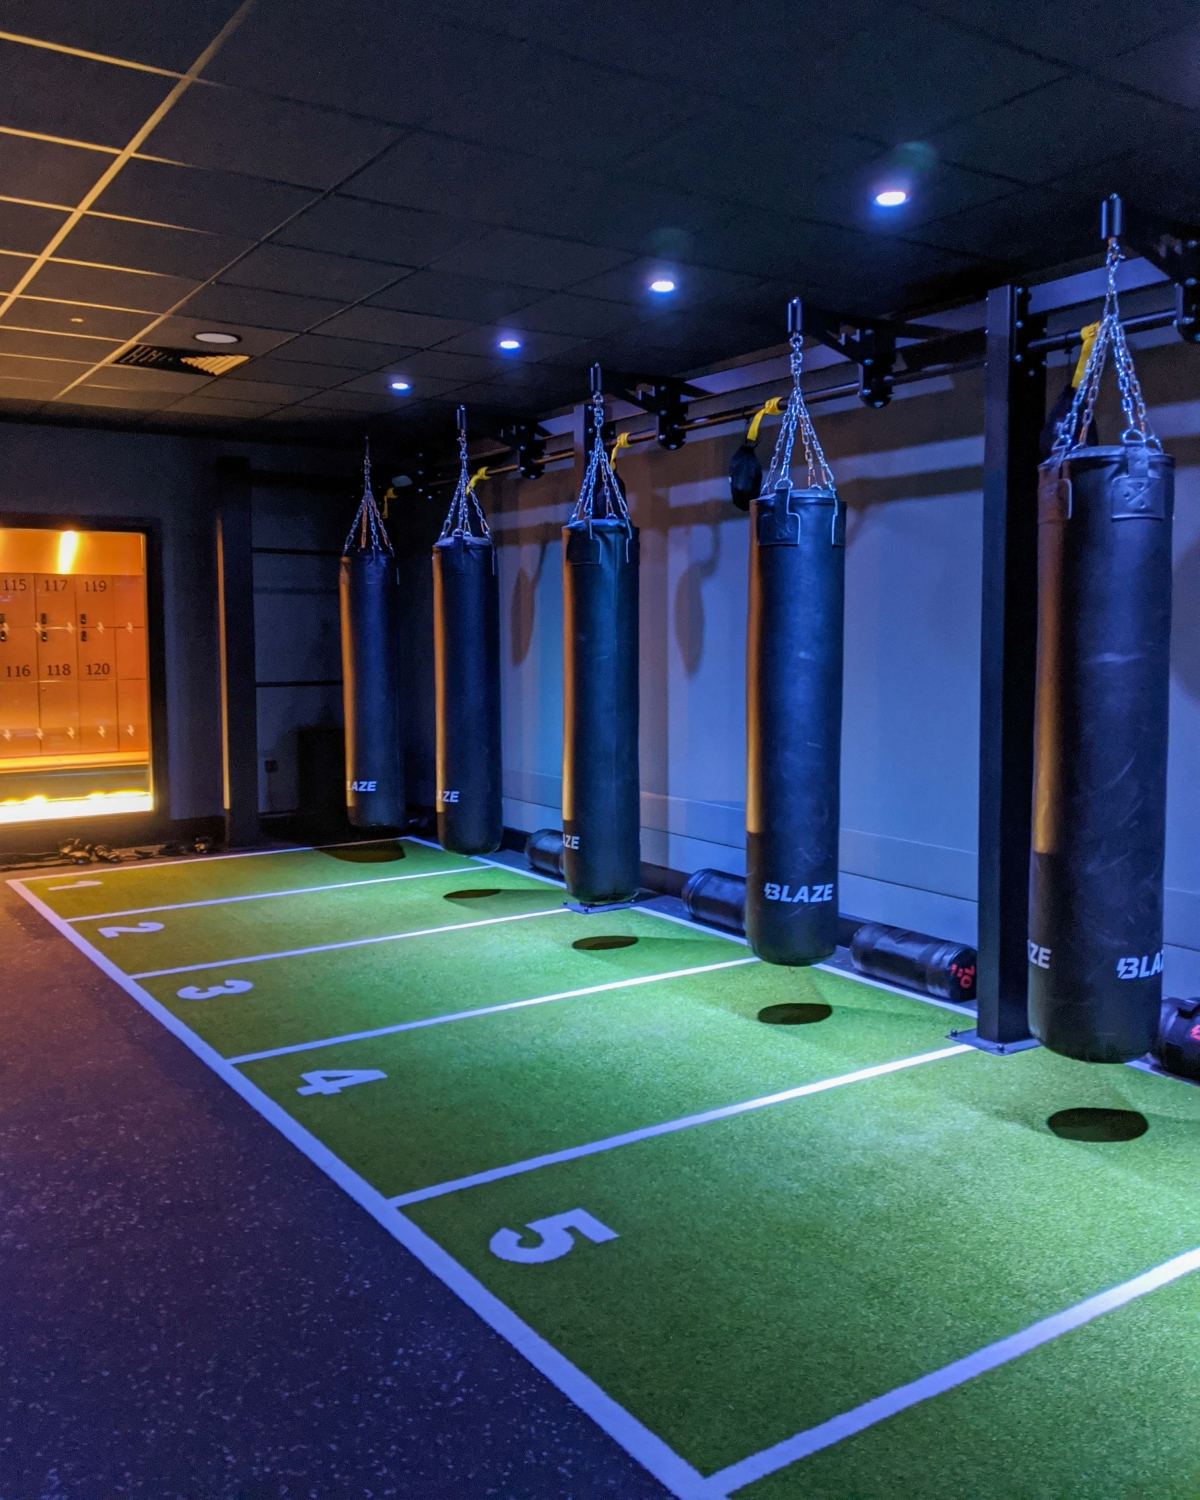 Blaze Studio Birmingham studio for high intensity interval training classes